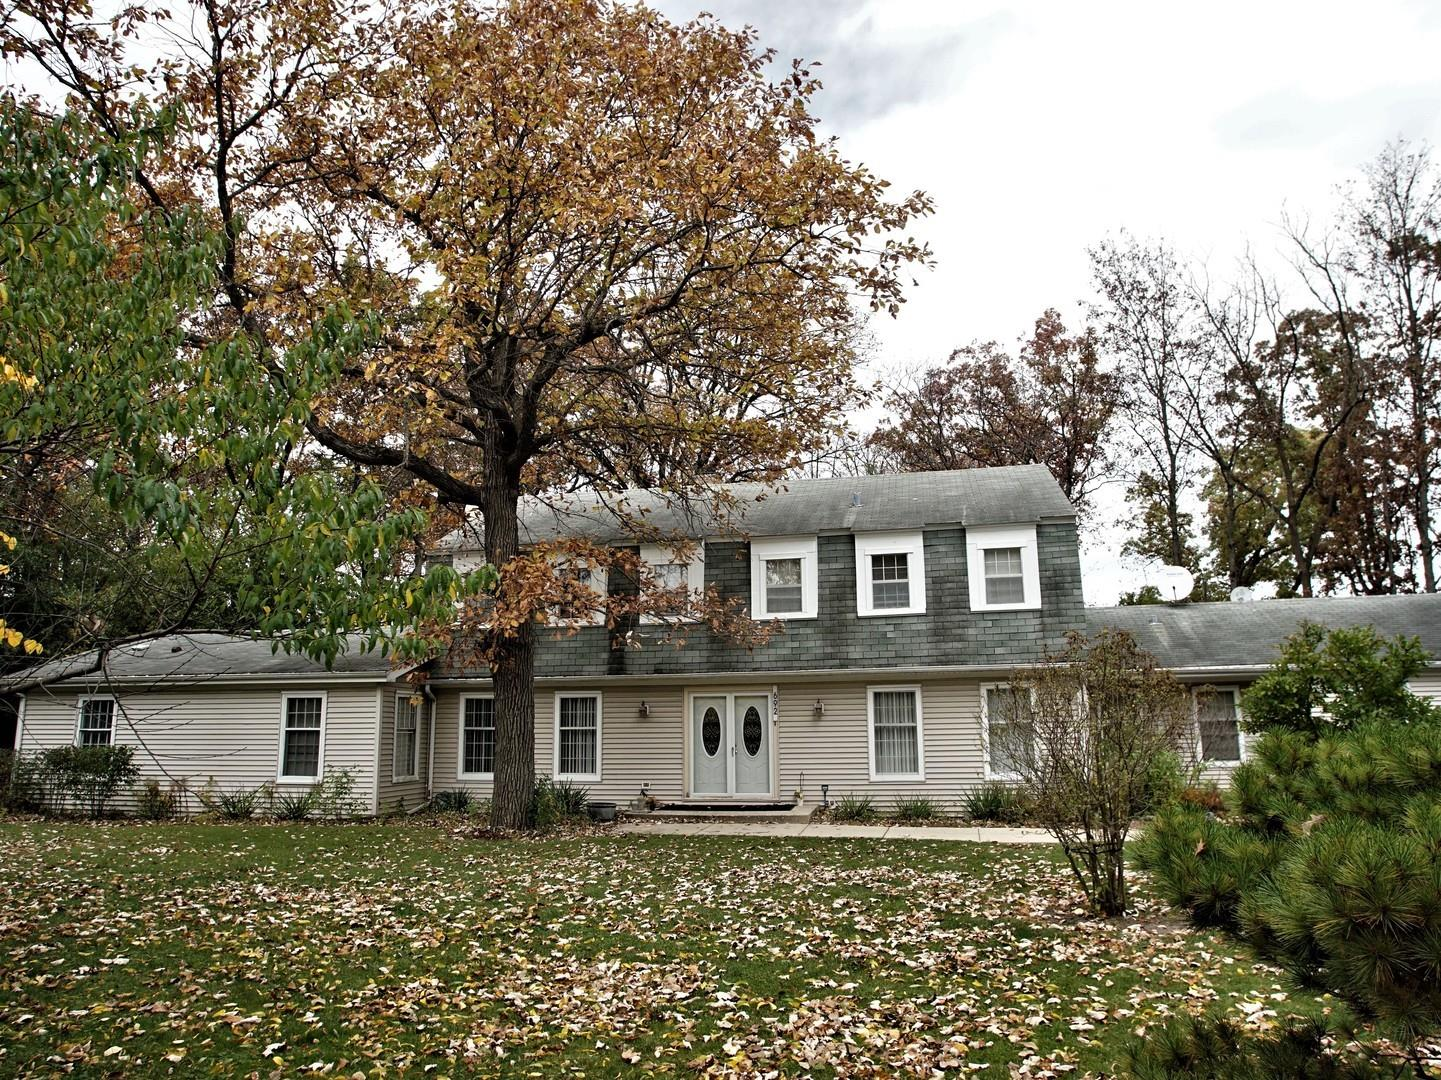 692 S WAUKEGAN Road, Lake Forest, IL 60045 - #: 10987193